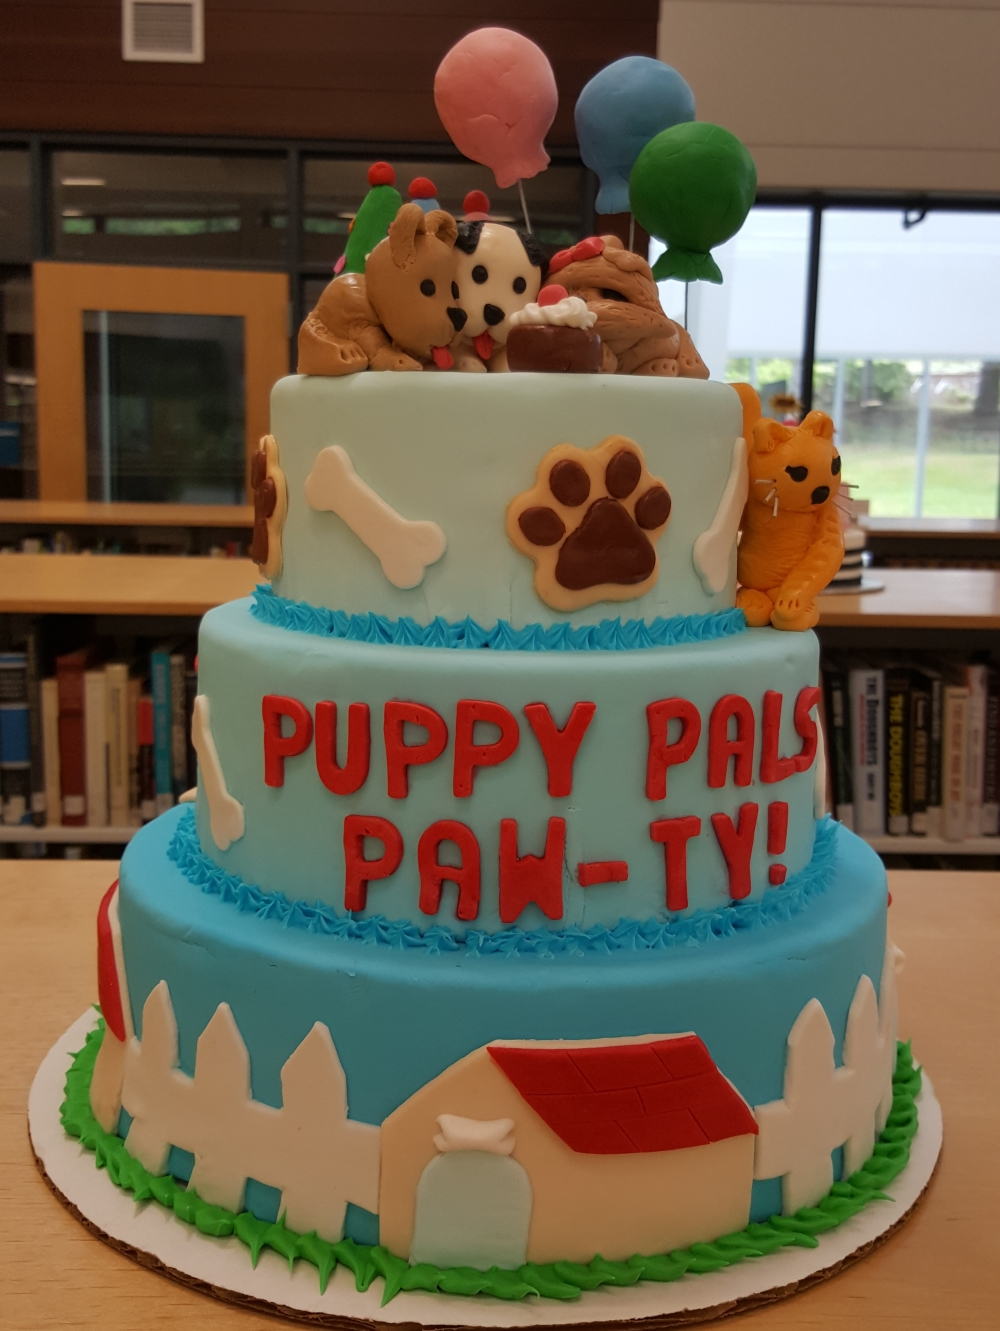 2019 Cakes Puppy Pals Pawty - front view